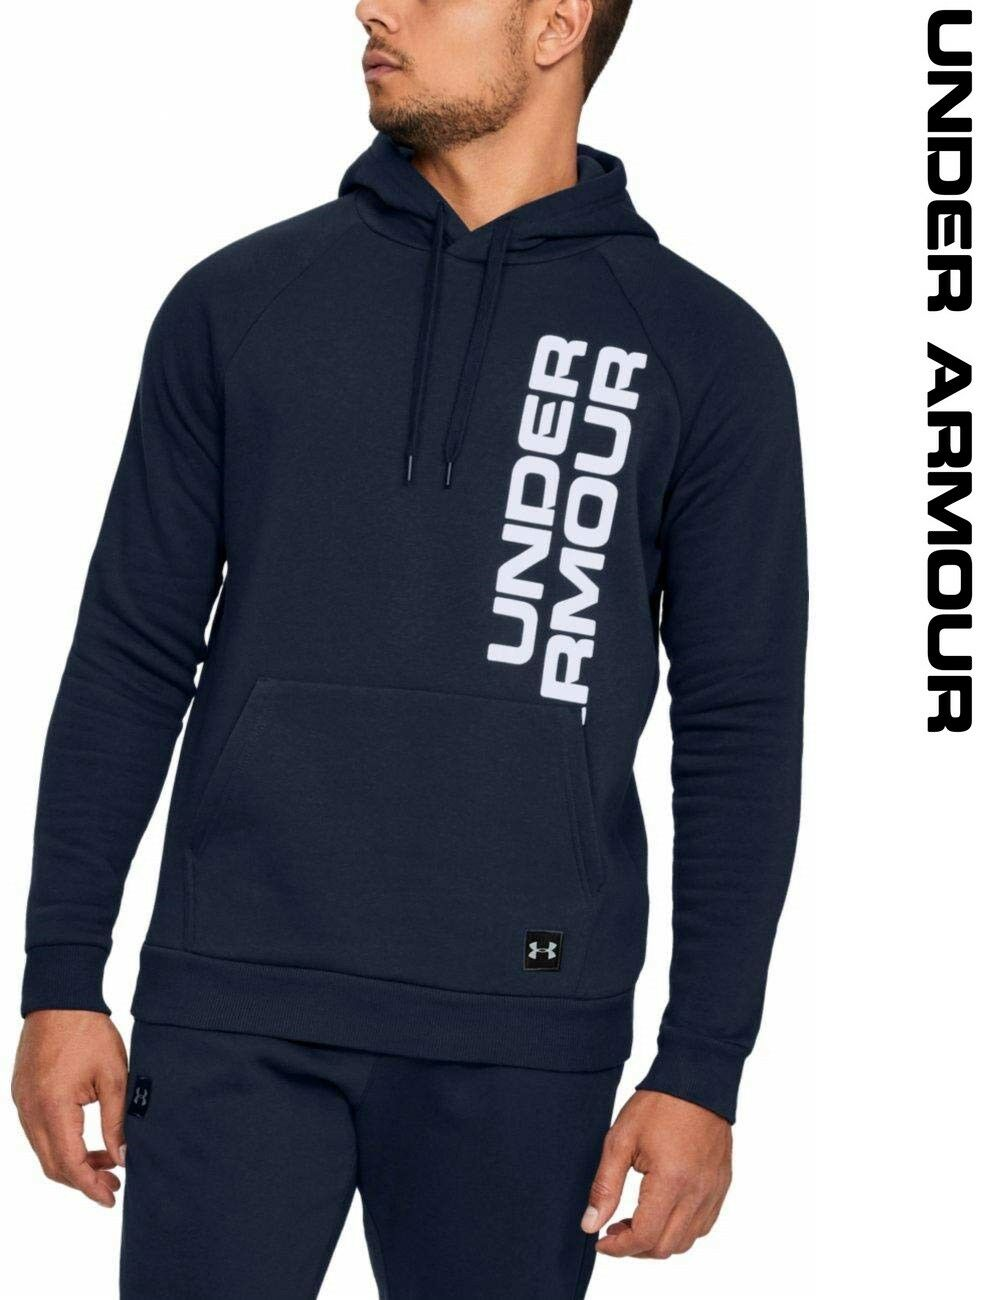 Under Armour UA Rival Fleece Script Men's Hoodie Lightweight Sports 1322028-408